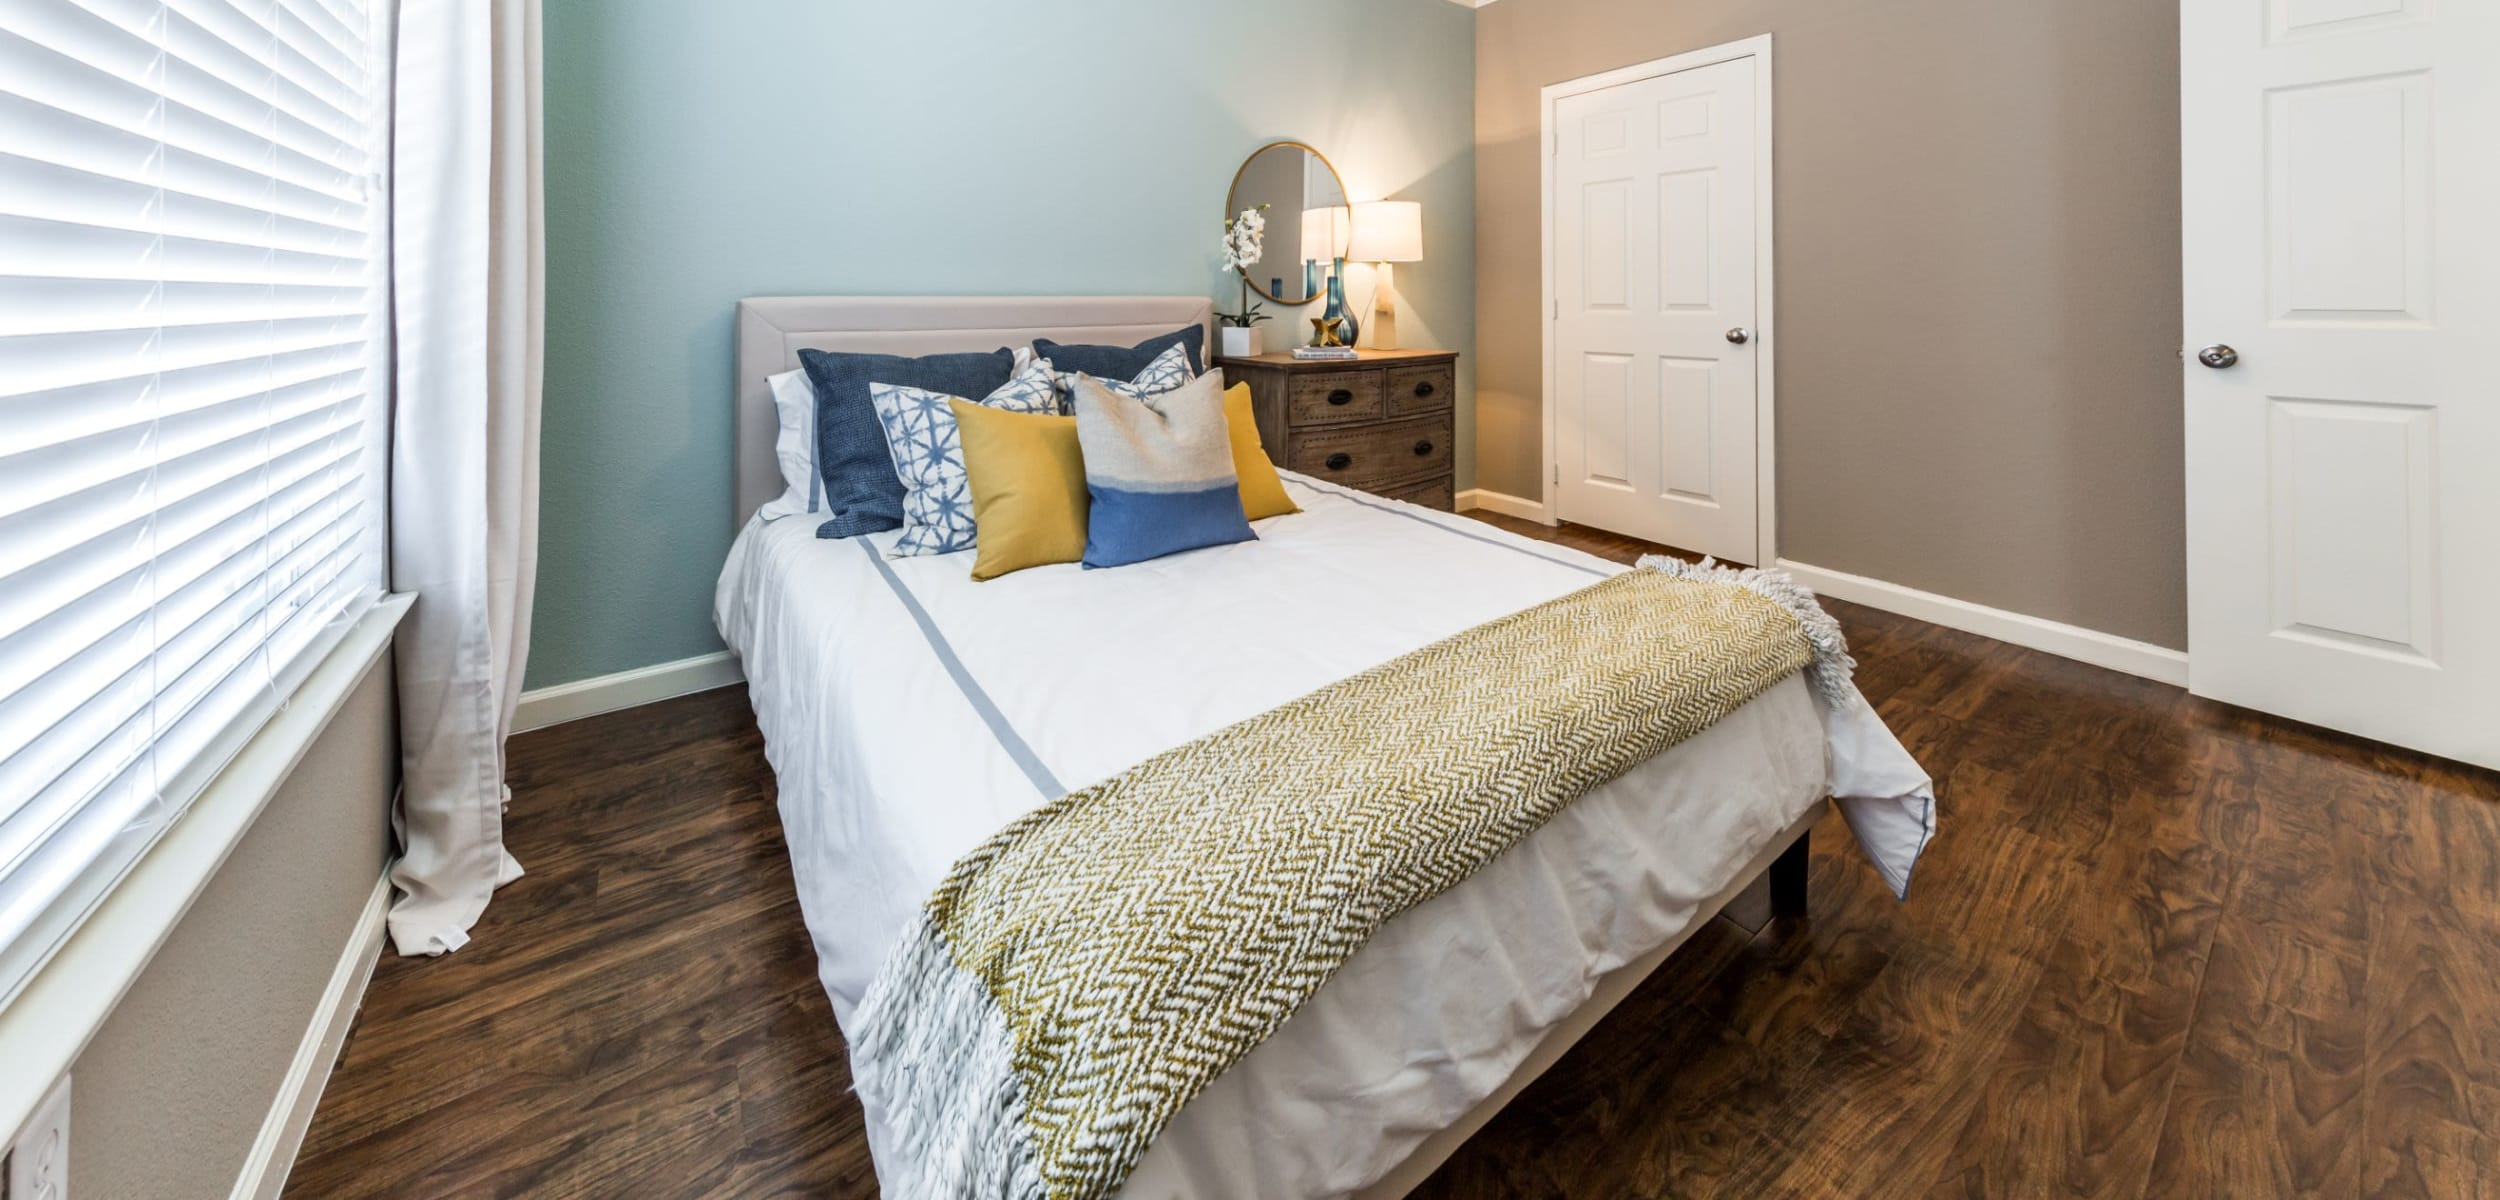 Bedroom with wood floors and a large window at Marquis at Crown Ridge in San Antonio, Texas